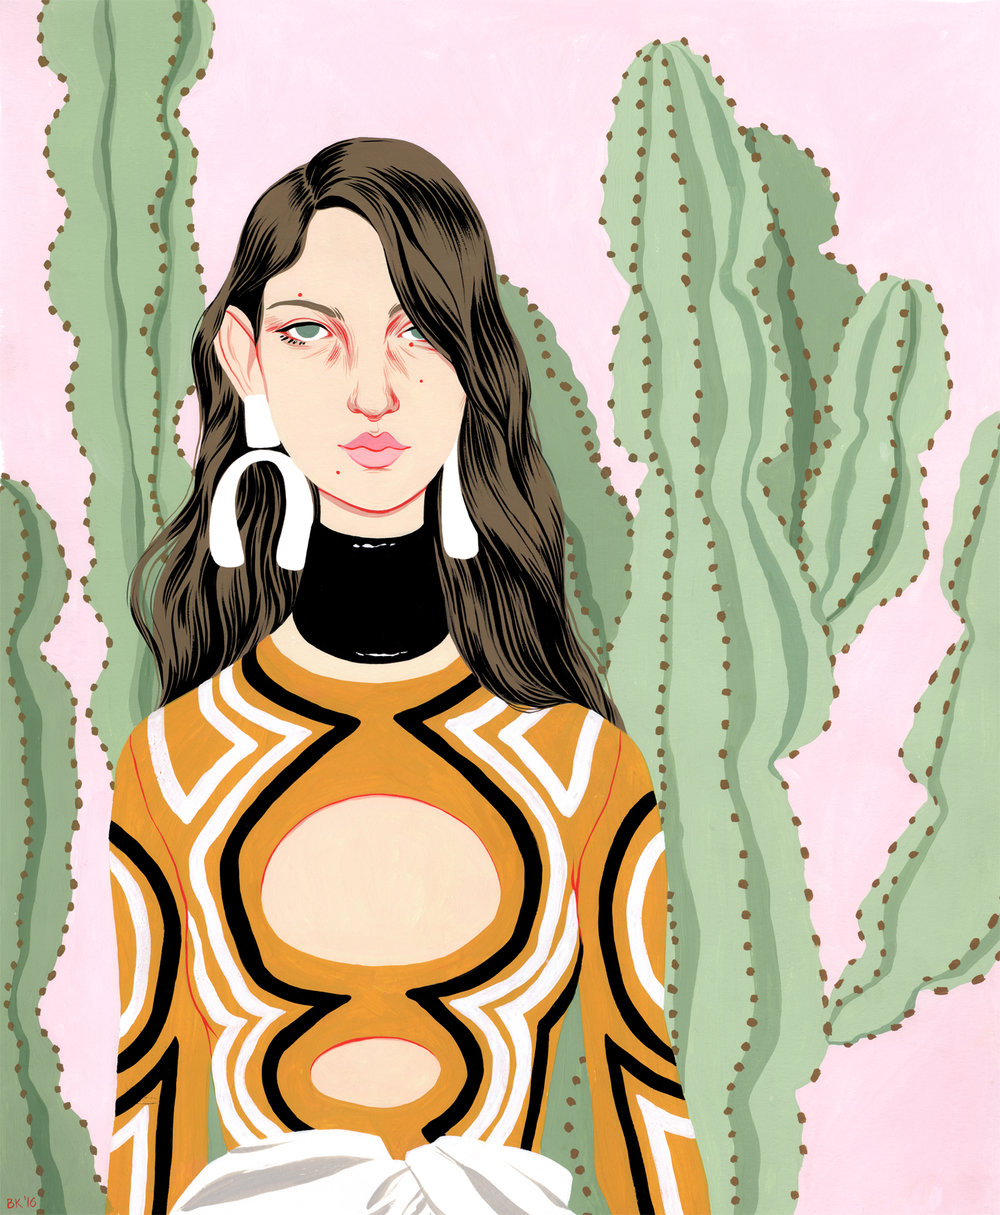 A personal piece inspired by a Proenza Schouler look